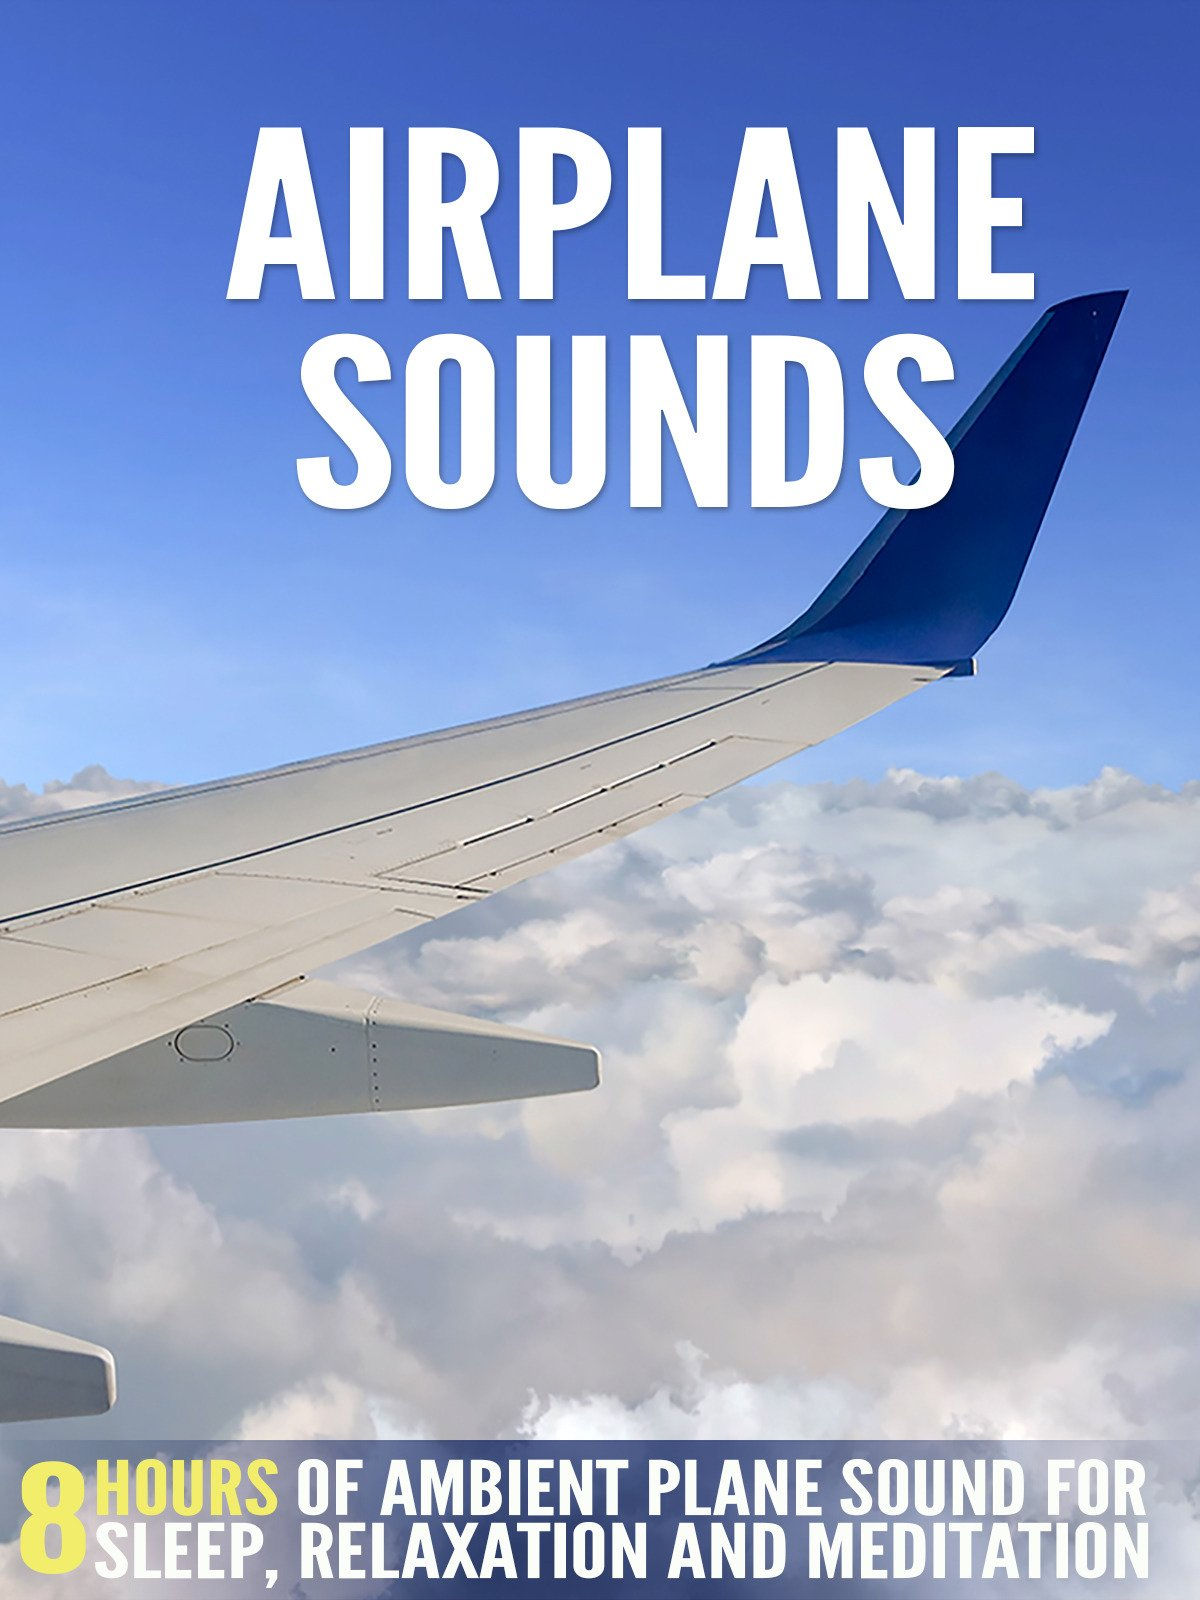 Airplane Sounds: 8 Hours of Ambient Plane Sound for Sleep, Relaxation and Meditation